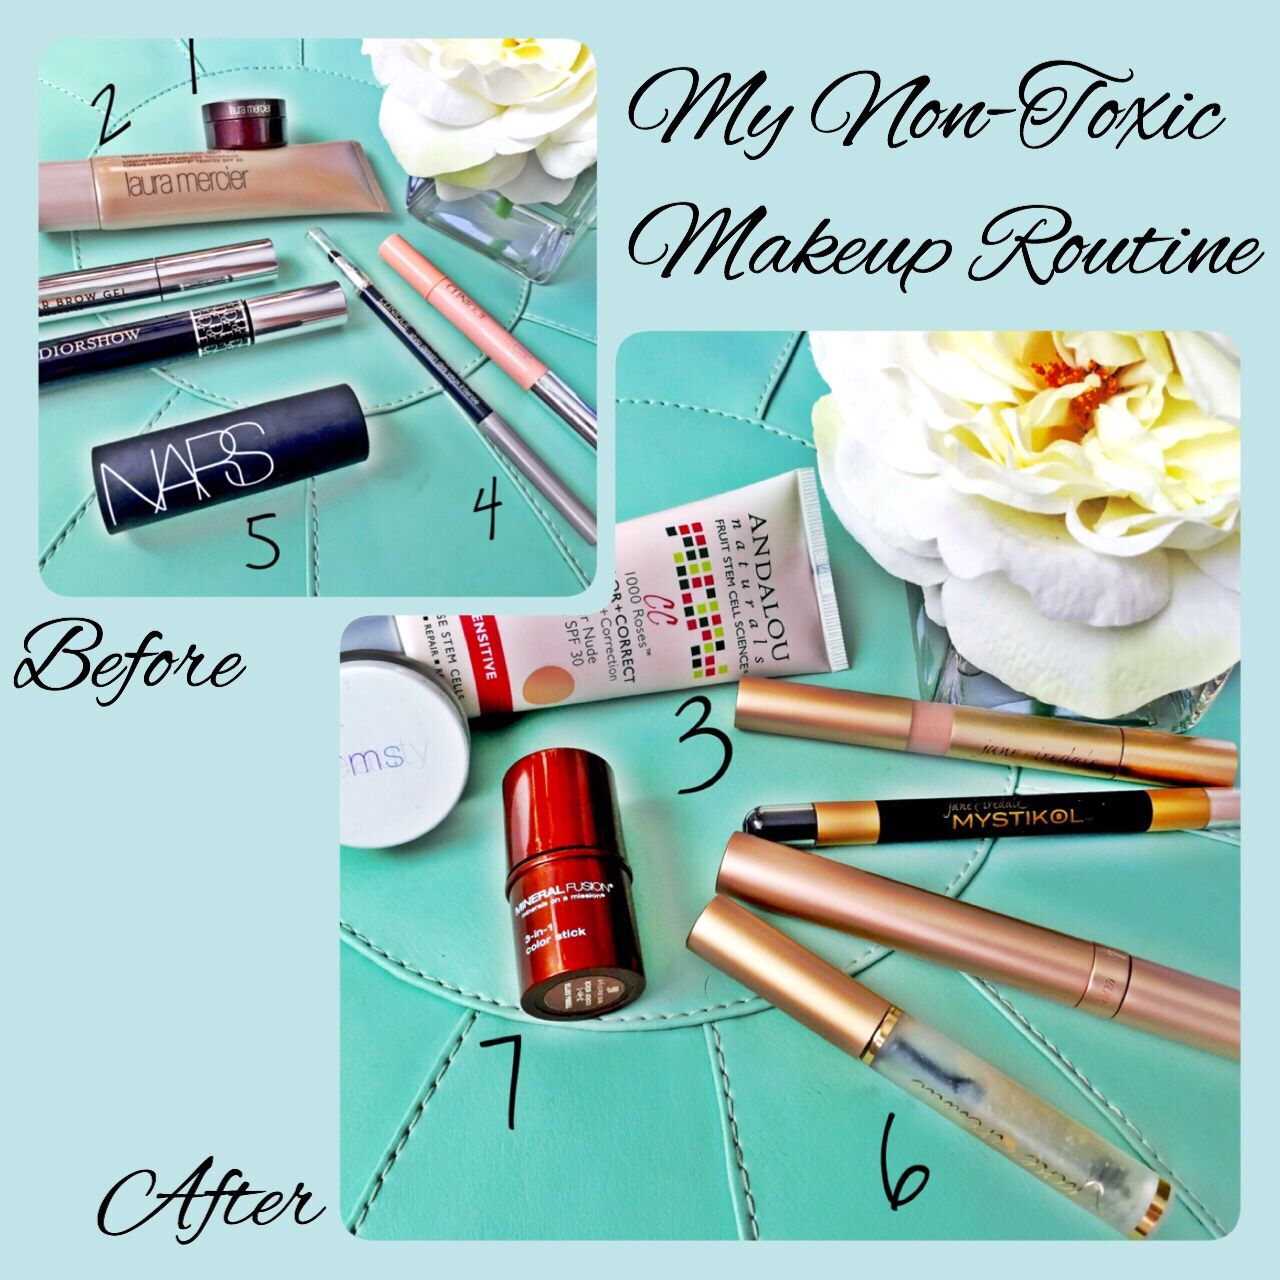 It's Makeup Monday! Find a non-toxic swap for your favorite makeup. This is what mine looked like, for details and reviews on the products check out http://www.practically-organic.com/?p=76